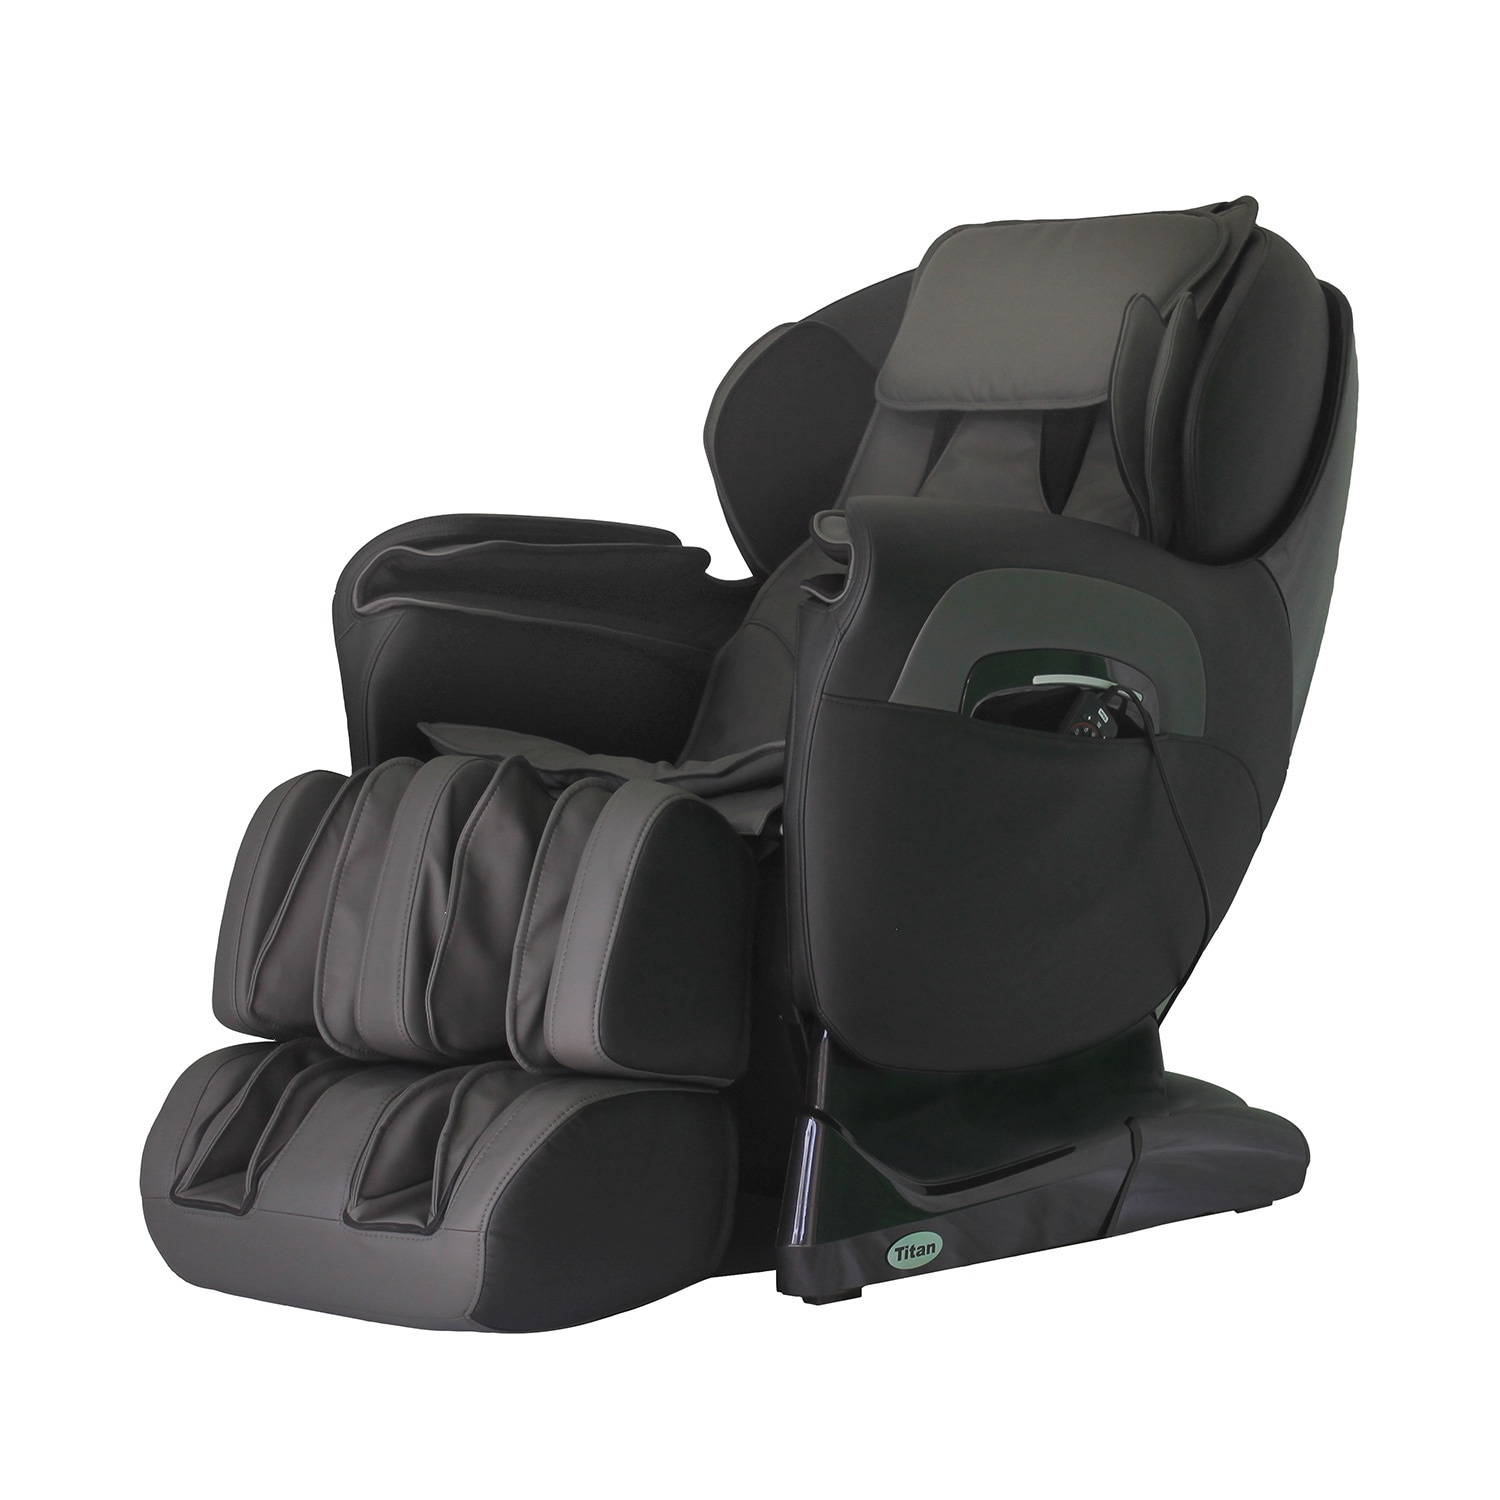 Titan Chair Titan Tp 8400 With L Track Massage And Space Saver